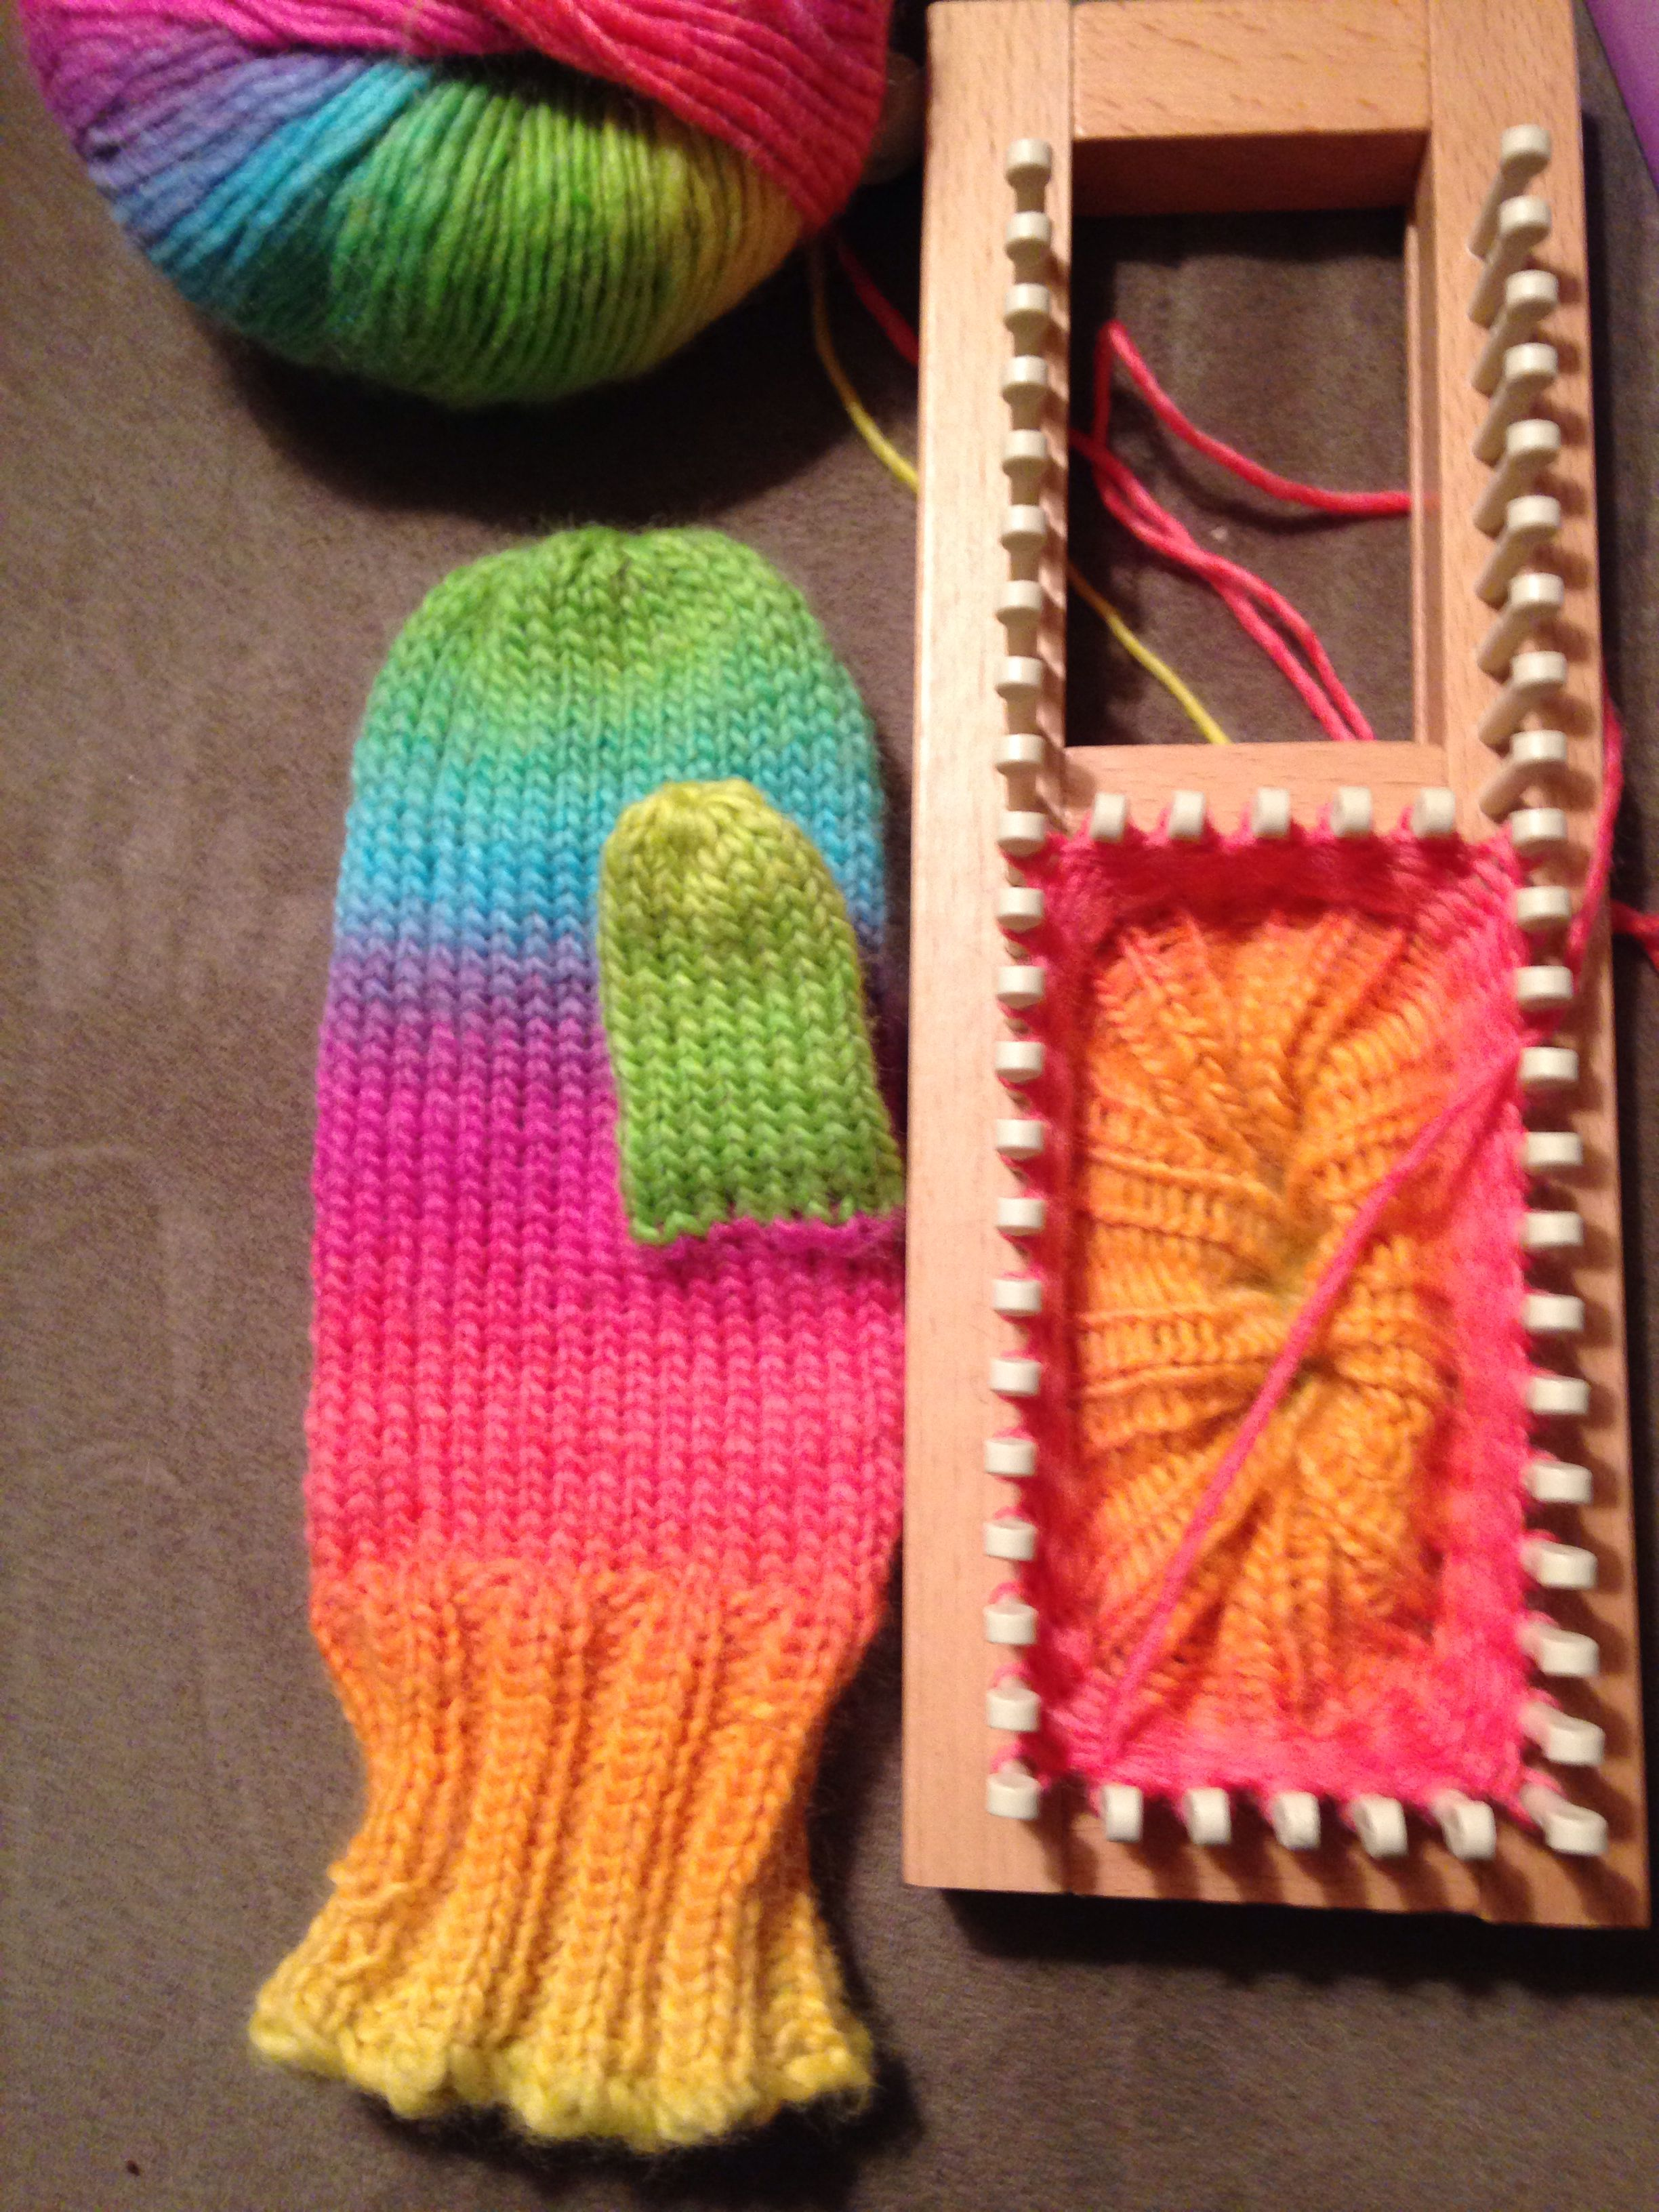 Mittens from pattern by Isela Phelps. Loomed by KalicoKat on the new ...